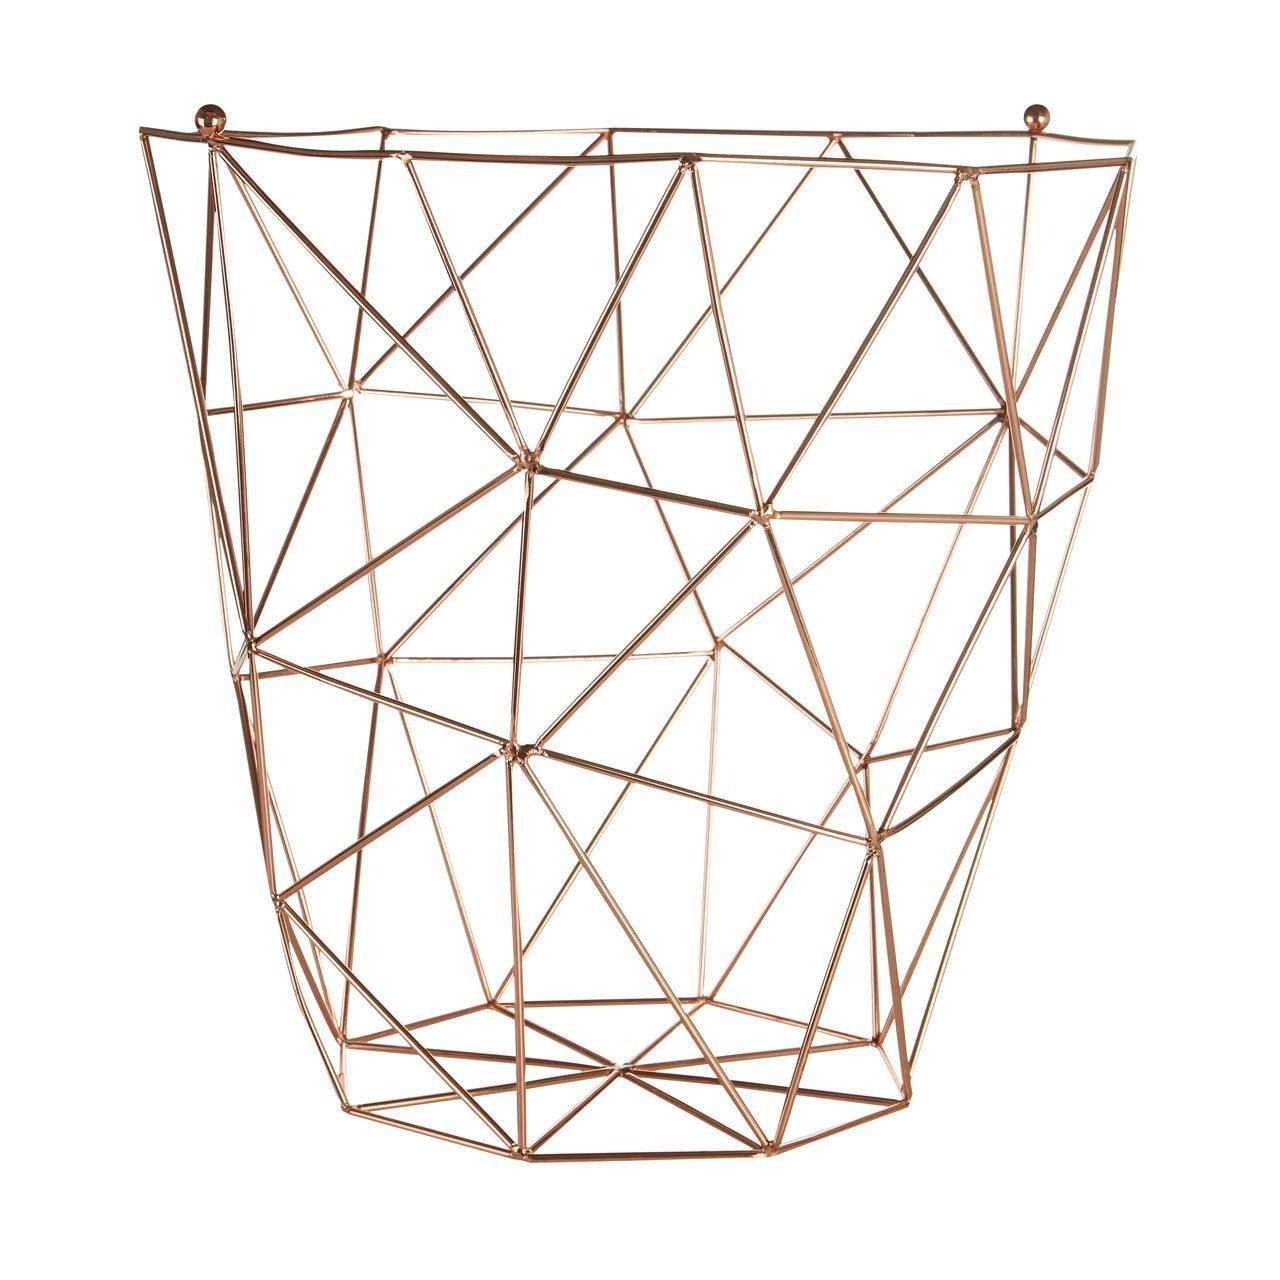 Copper storage basket waste bin in wire mesh vintage style magazine ...